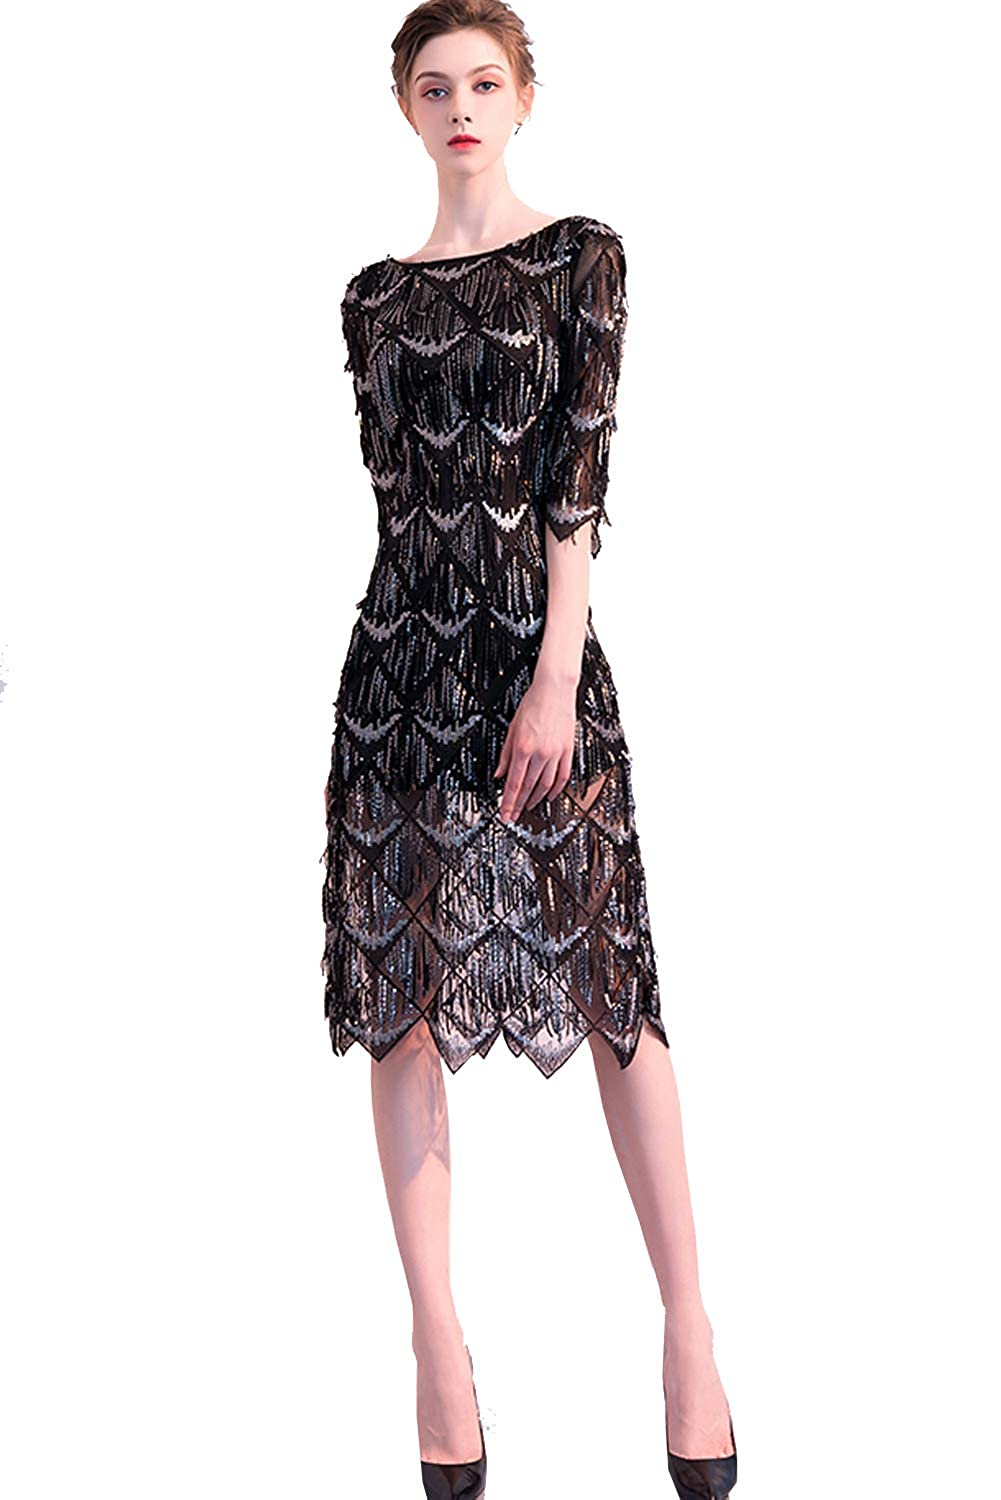 e98b63a22e7e Womens Sequin Short Evening Gown with Sleeves Mother of The Bride Dresses  2019 at Amazon Women's Clothing store: